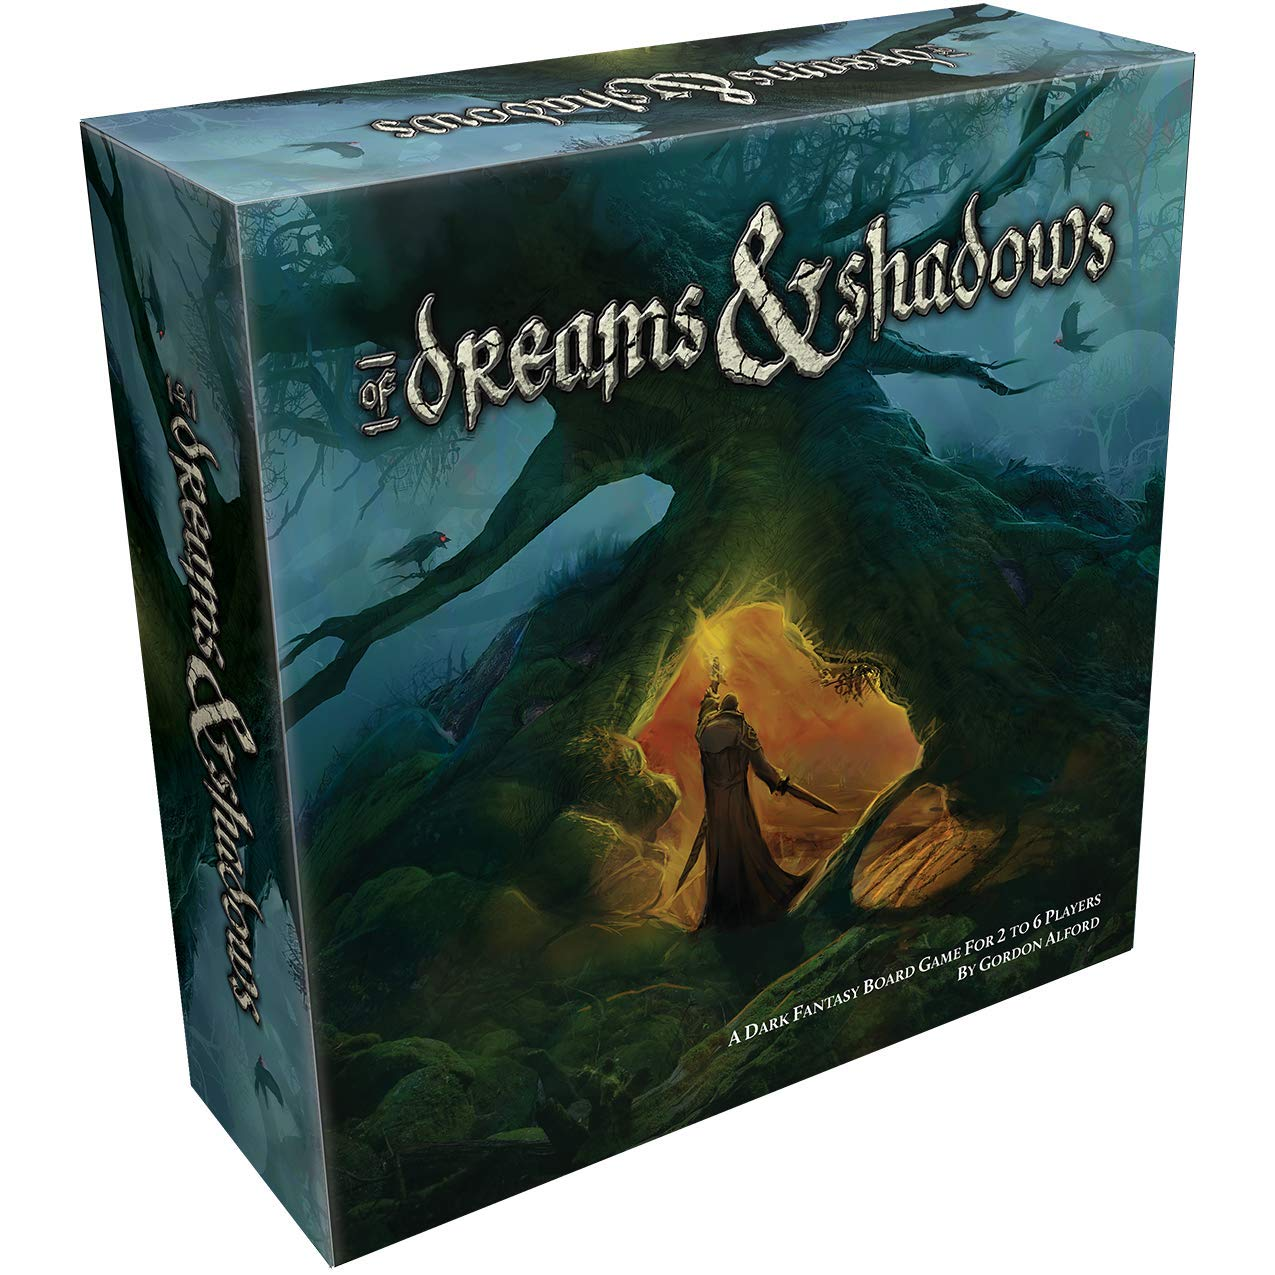 de la segunda edición de Dreams & Shadows, multicolor